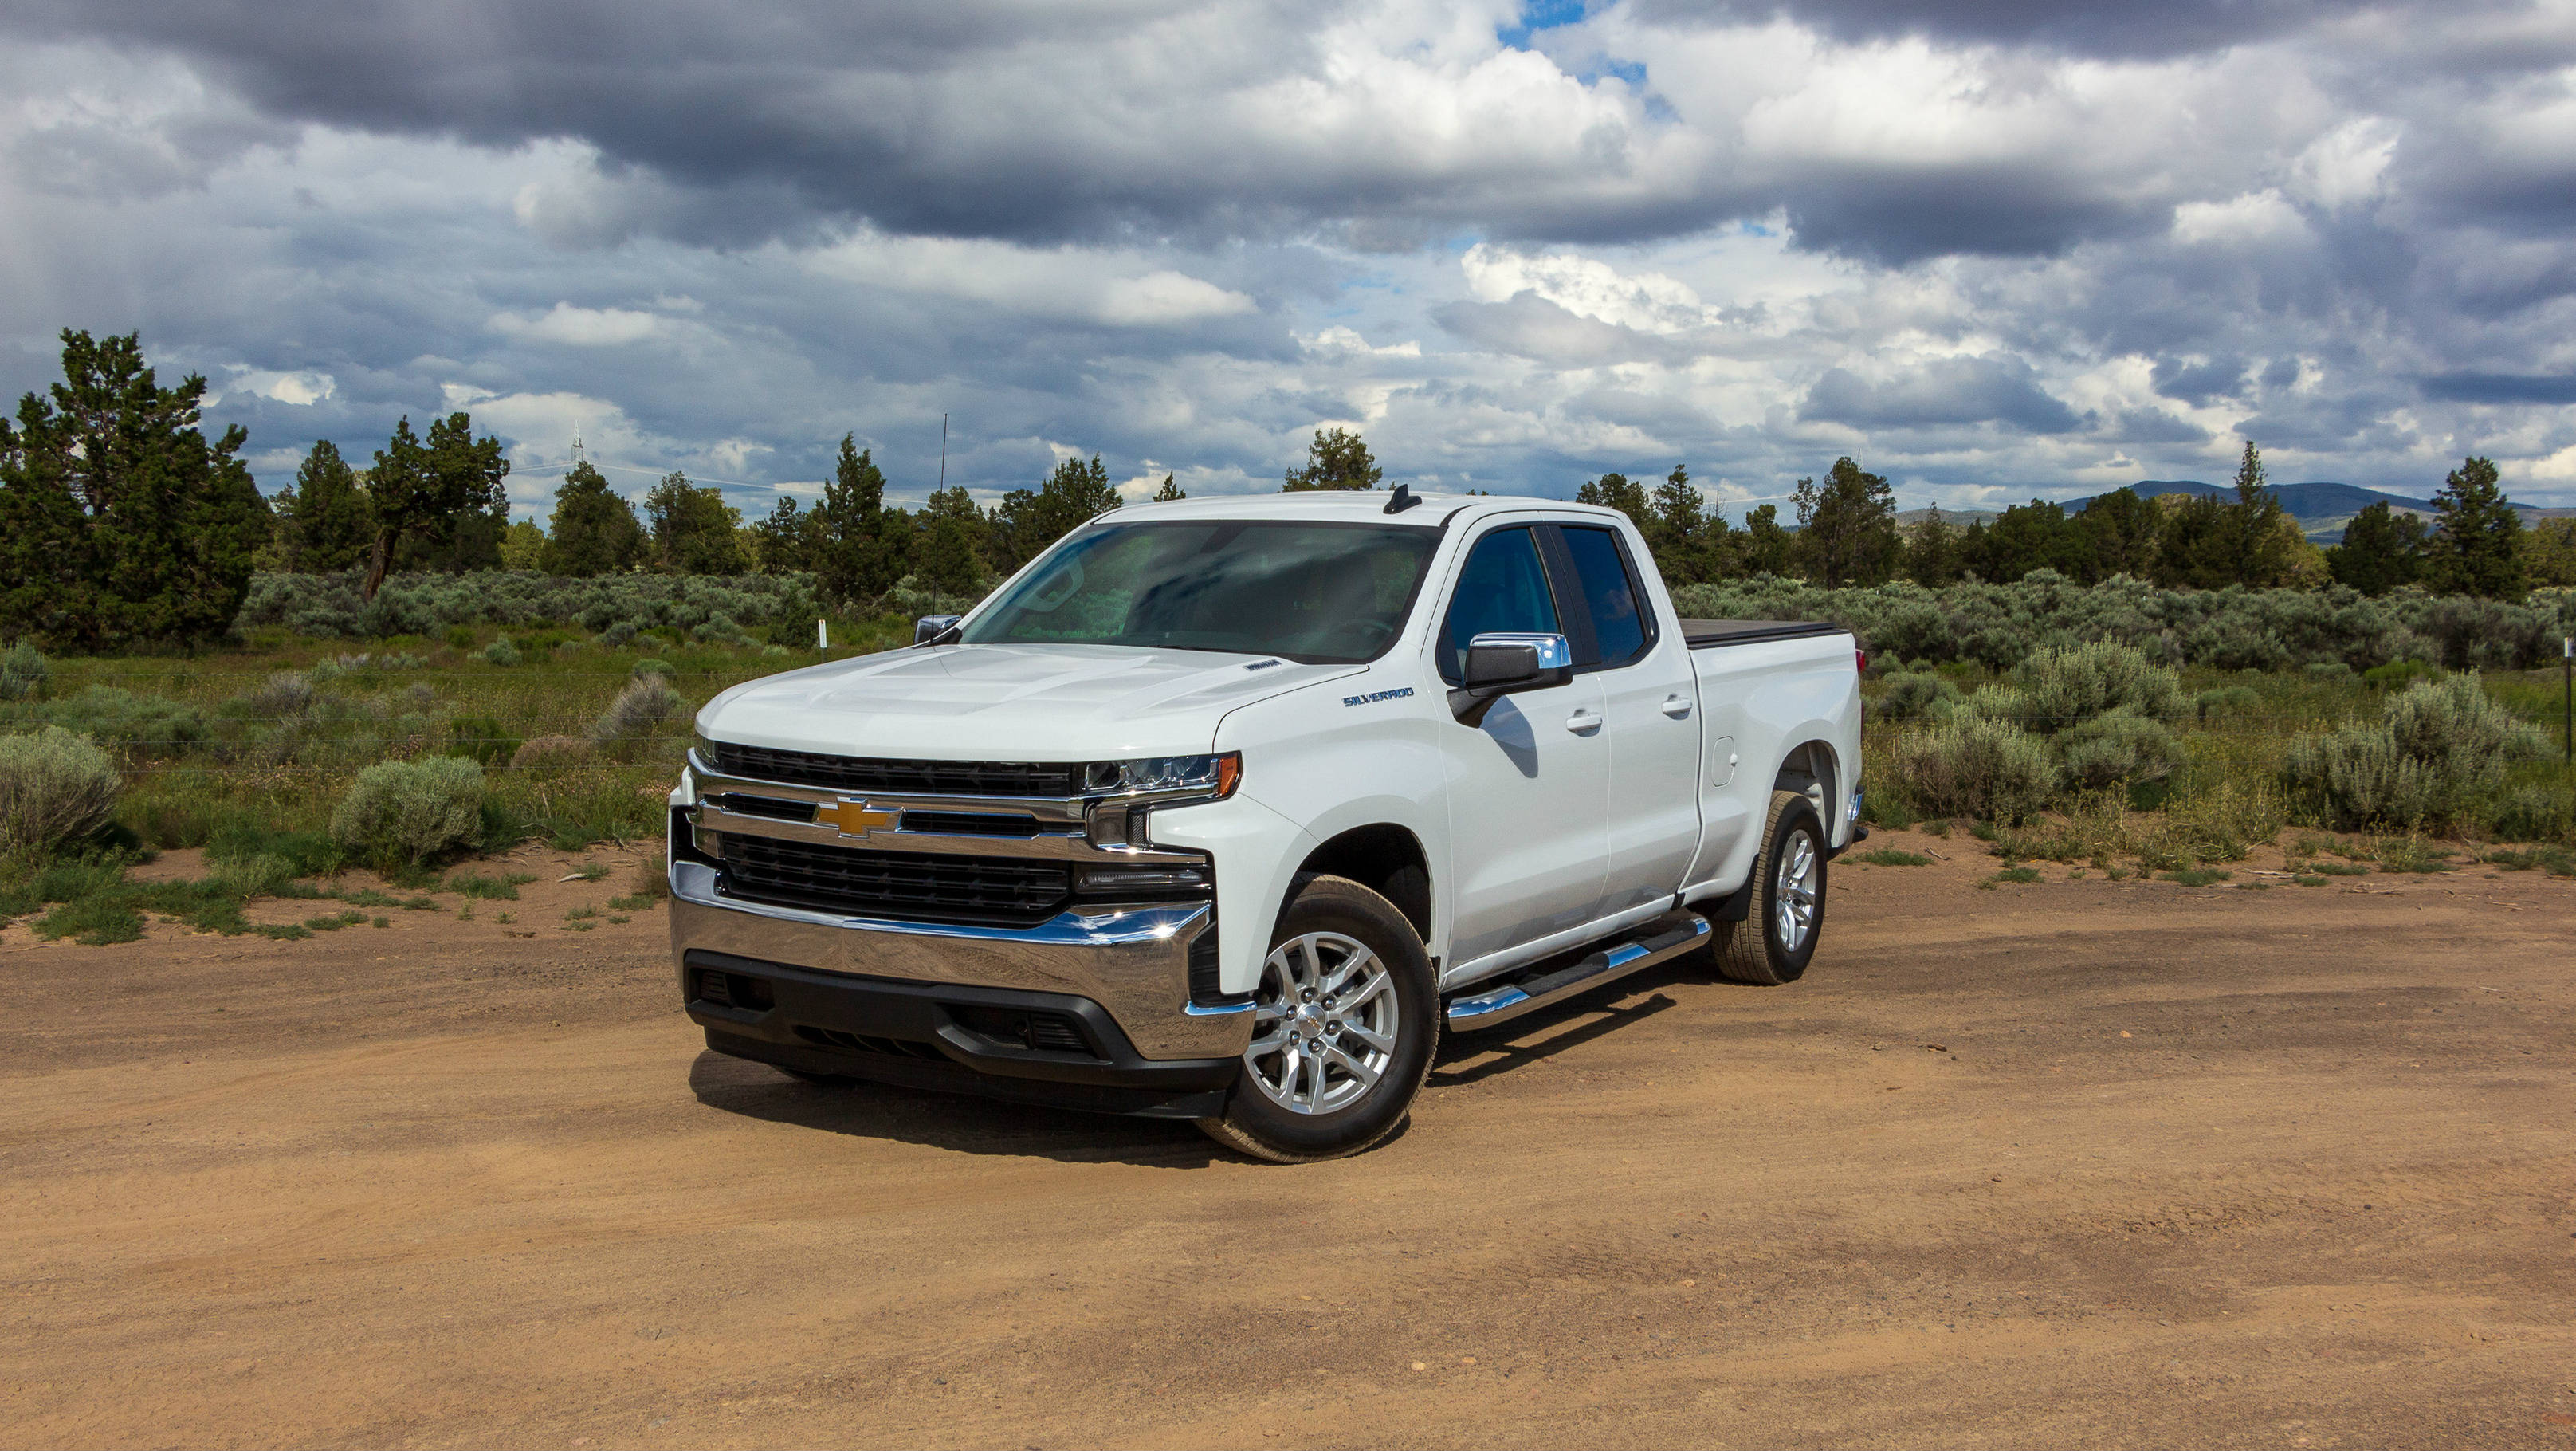 First Drive Review 2020 Chevrolet Silverado 1500 Duramax Diesel